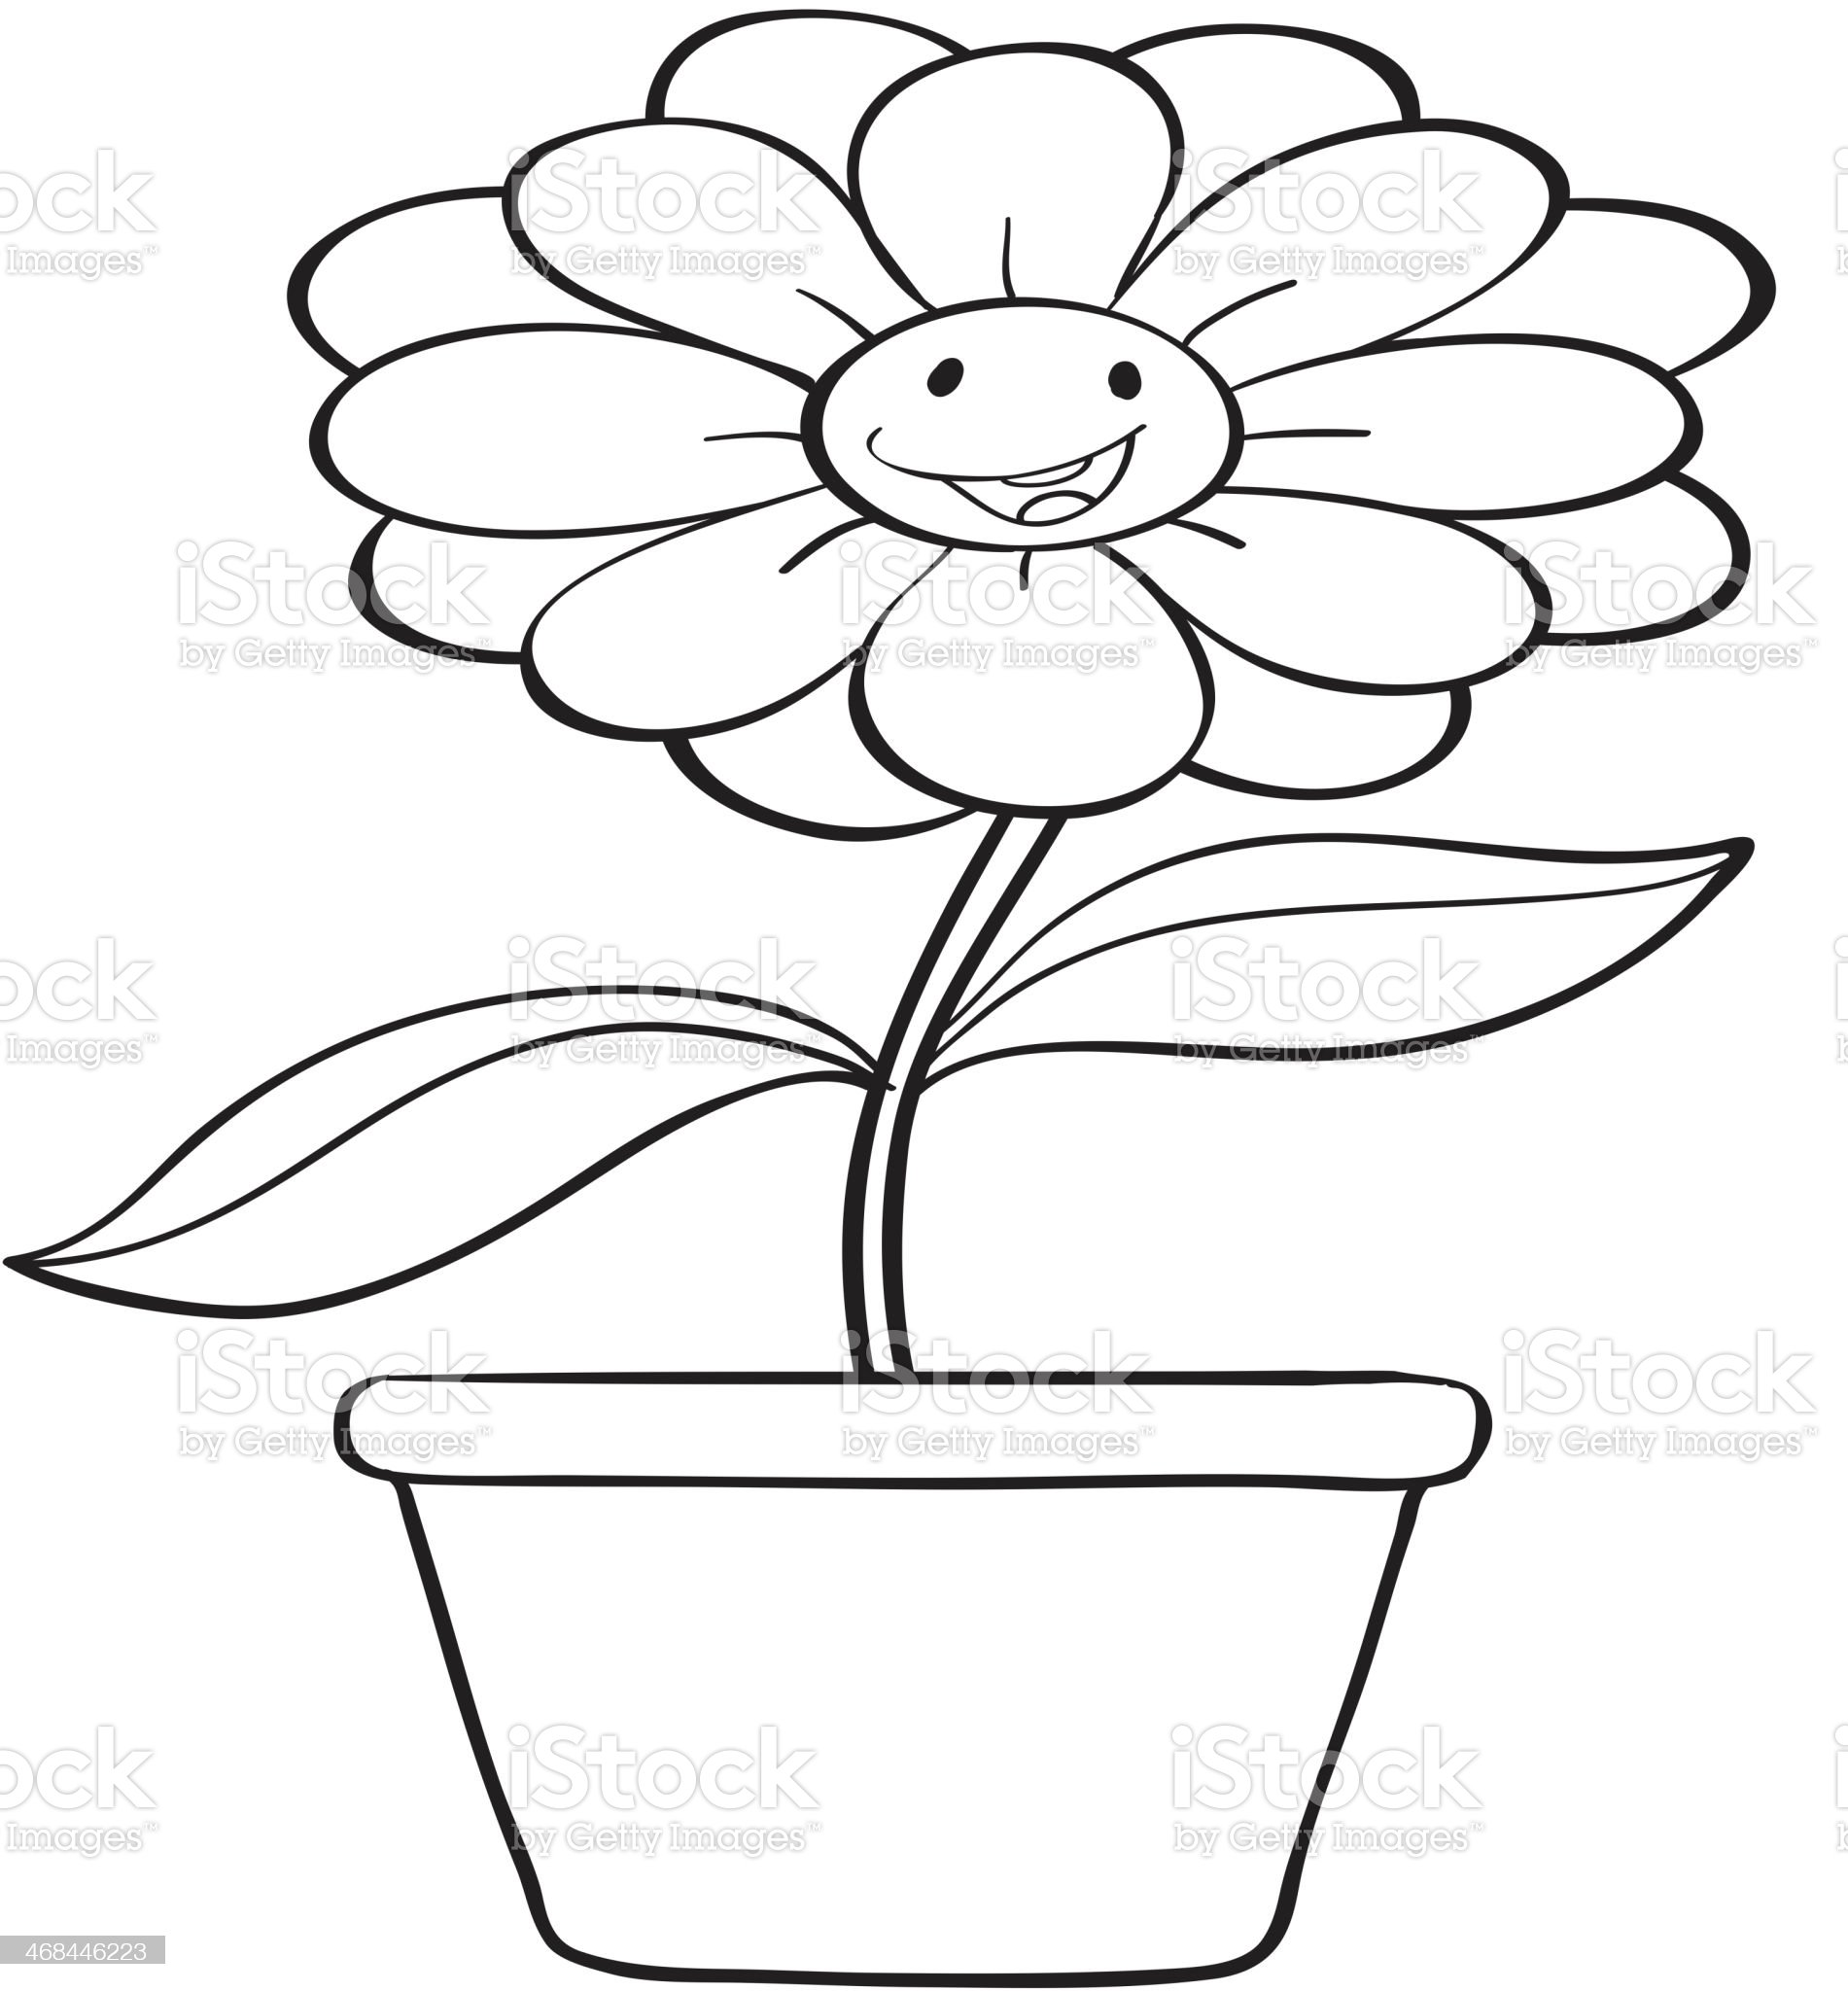 flower and a pot sketch royalty-free stock vector art